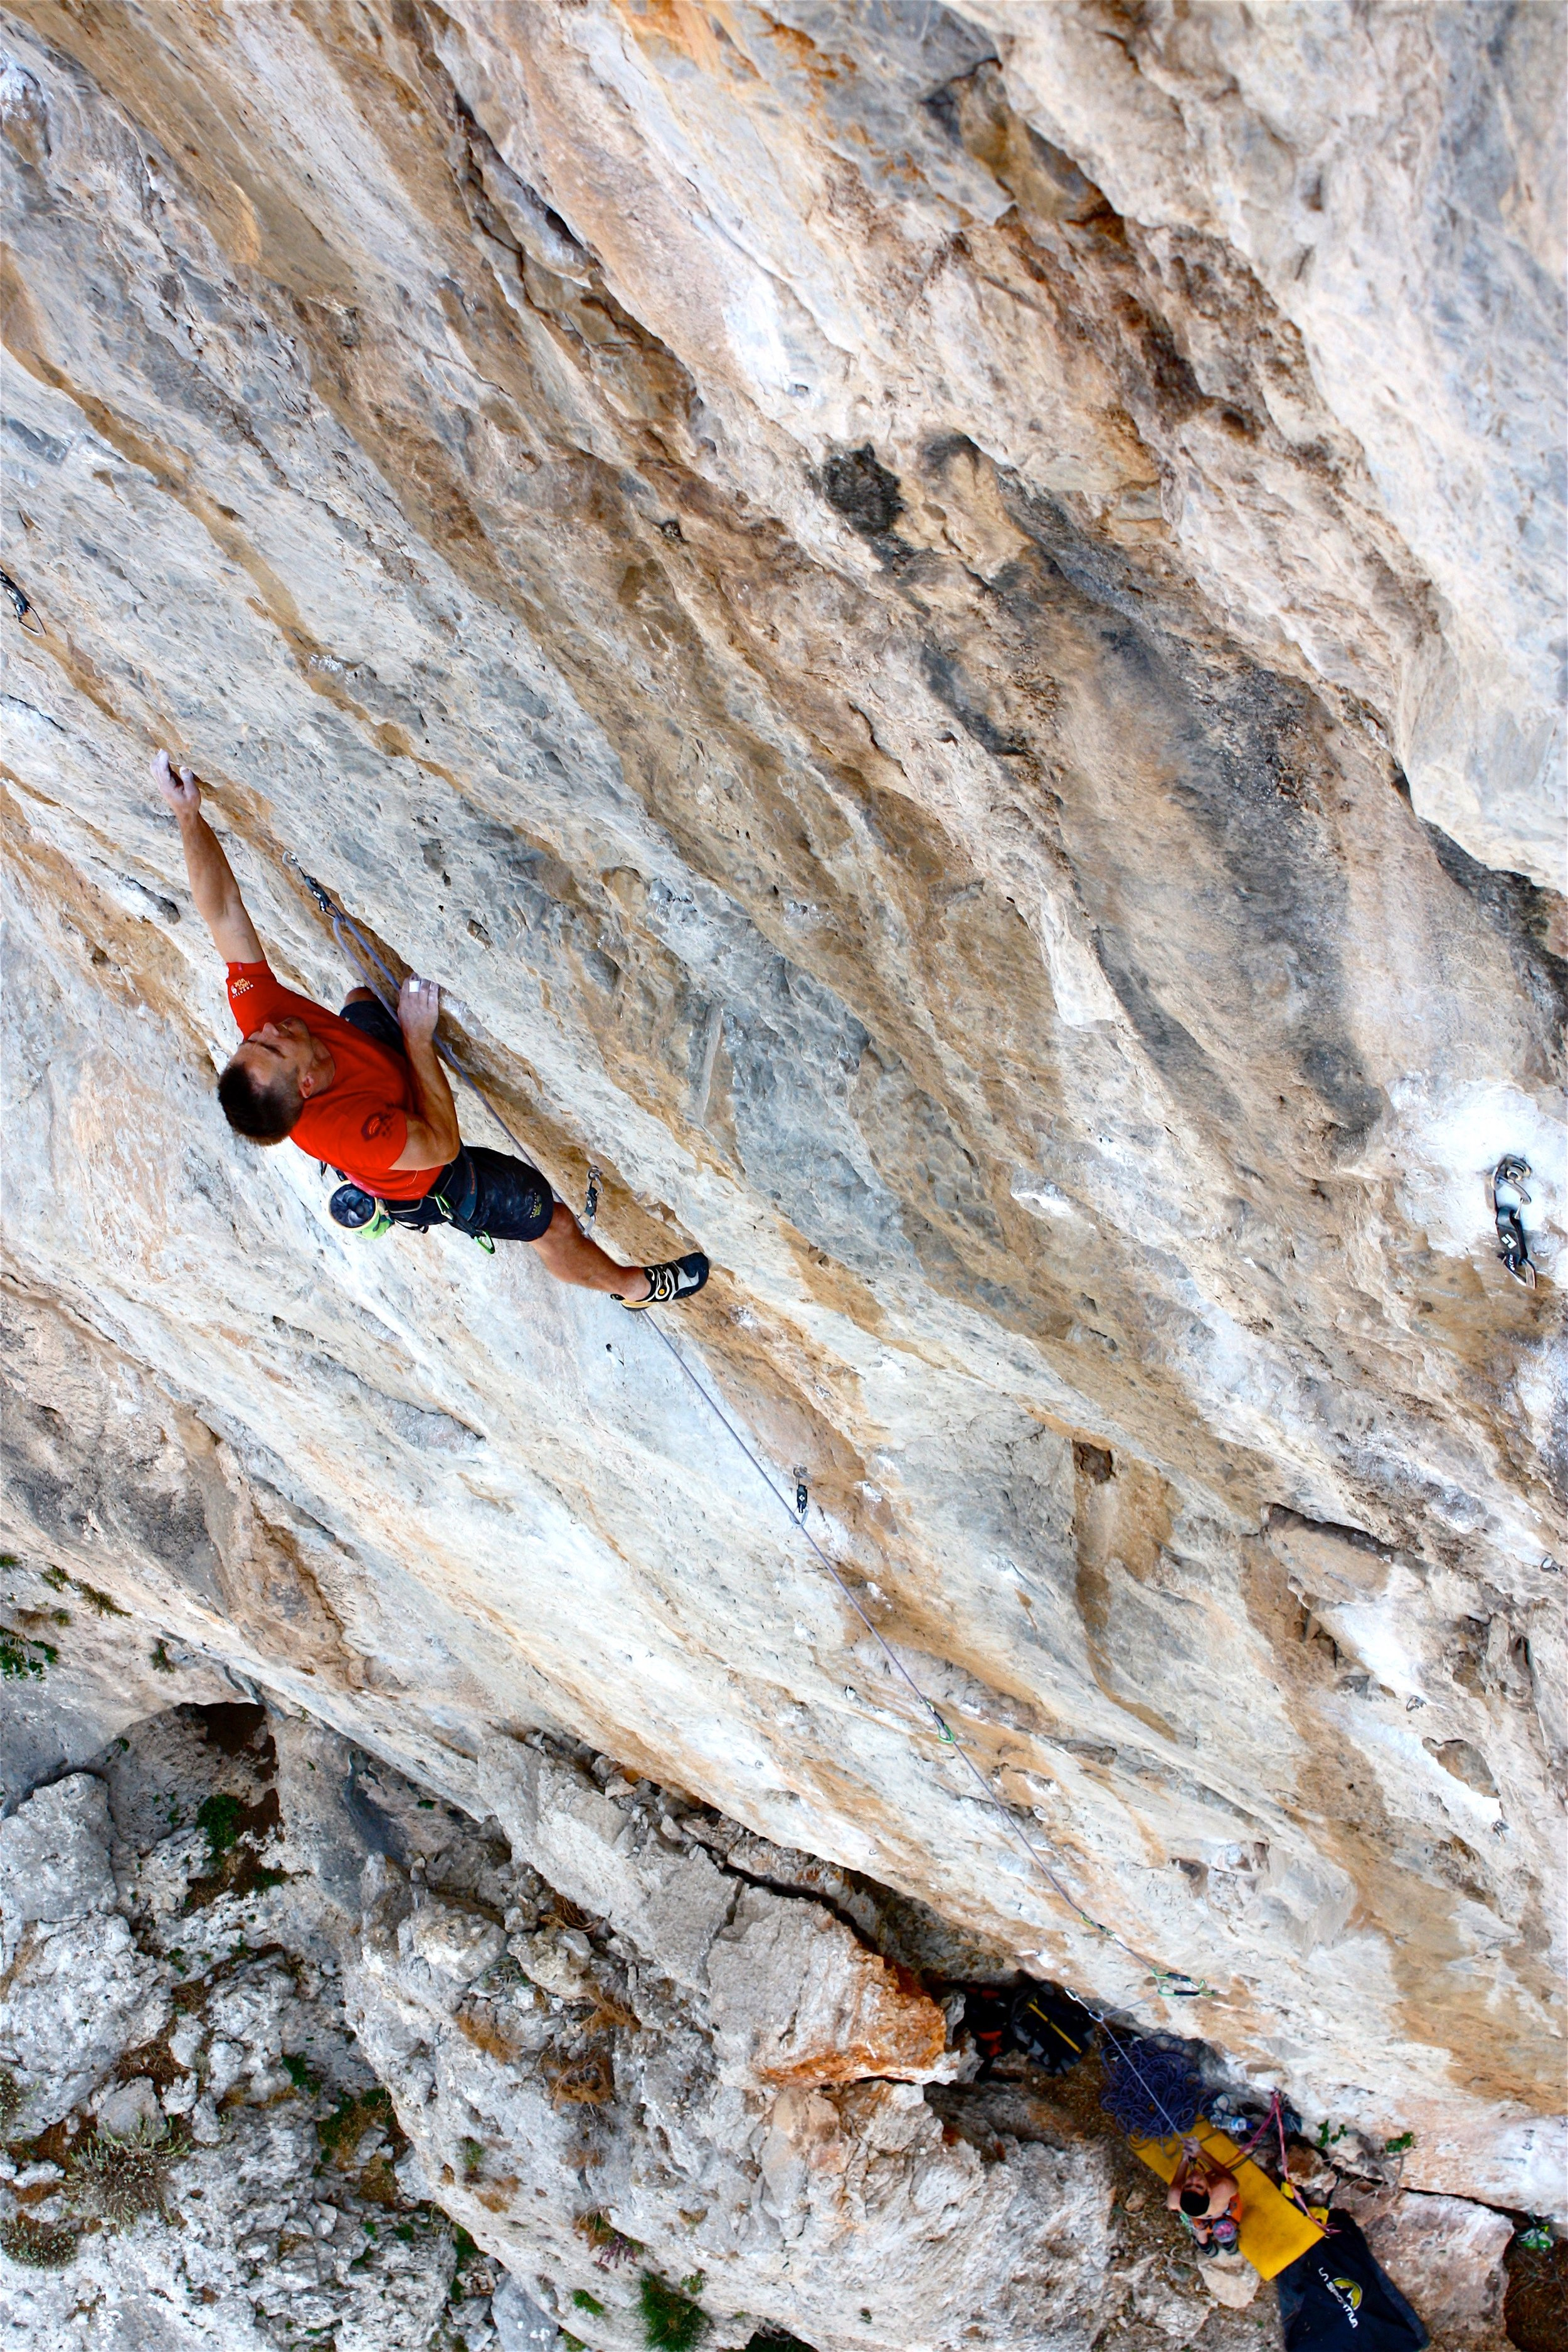 The Poison 7c+, Lower Spartan Wall, Kalymnos.  Photo: Selina Chen